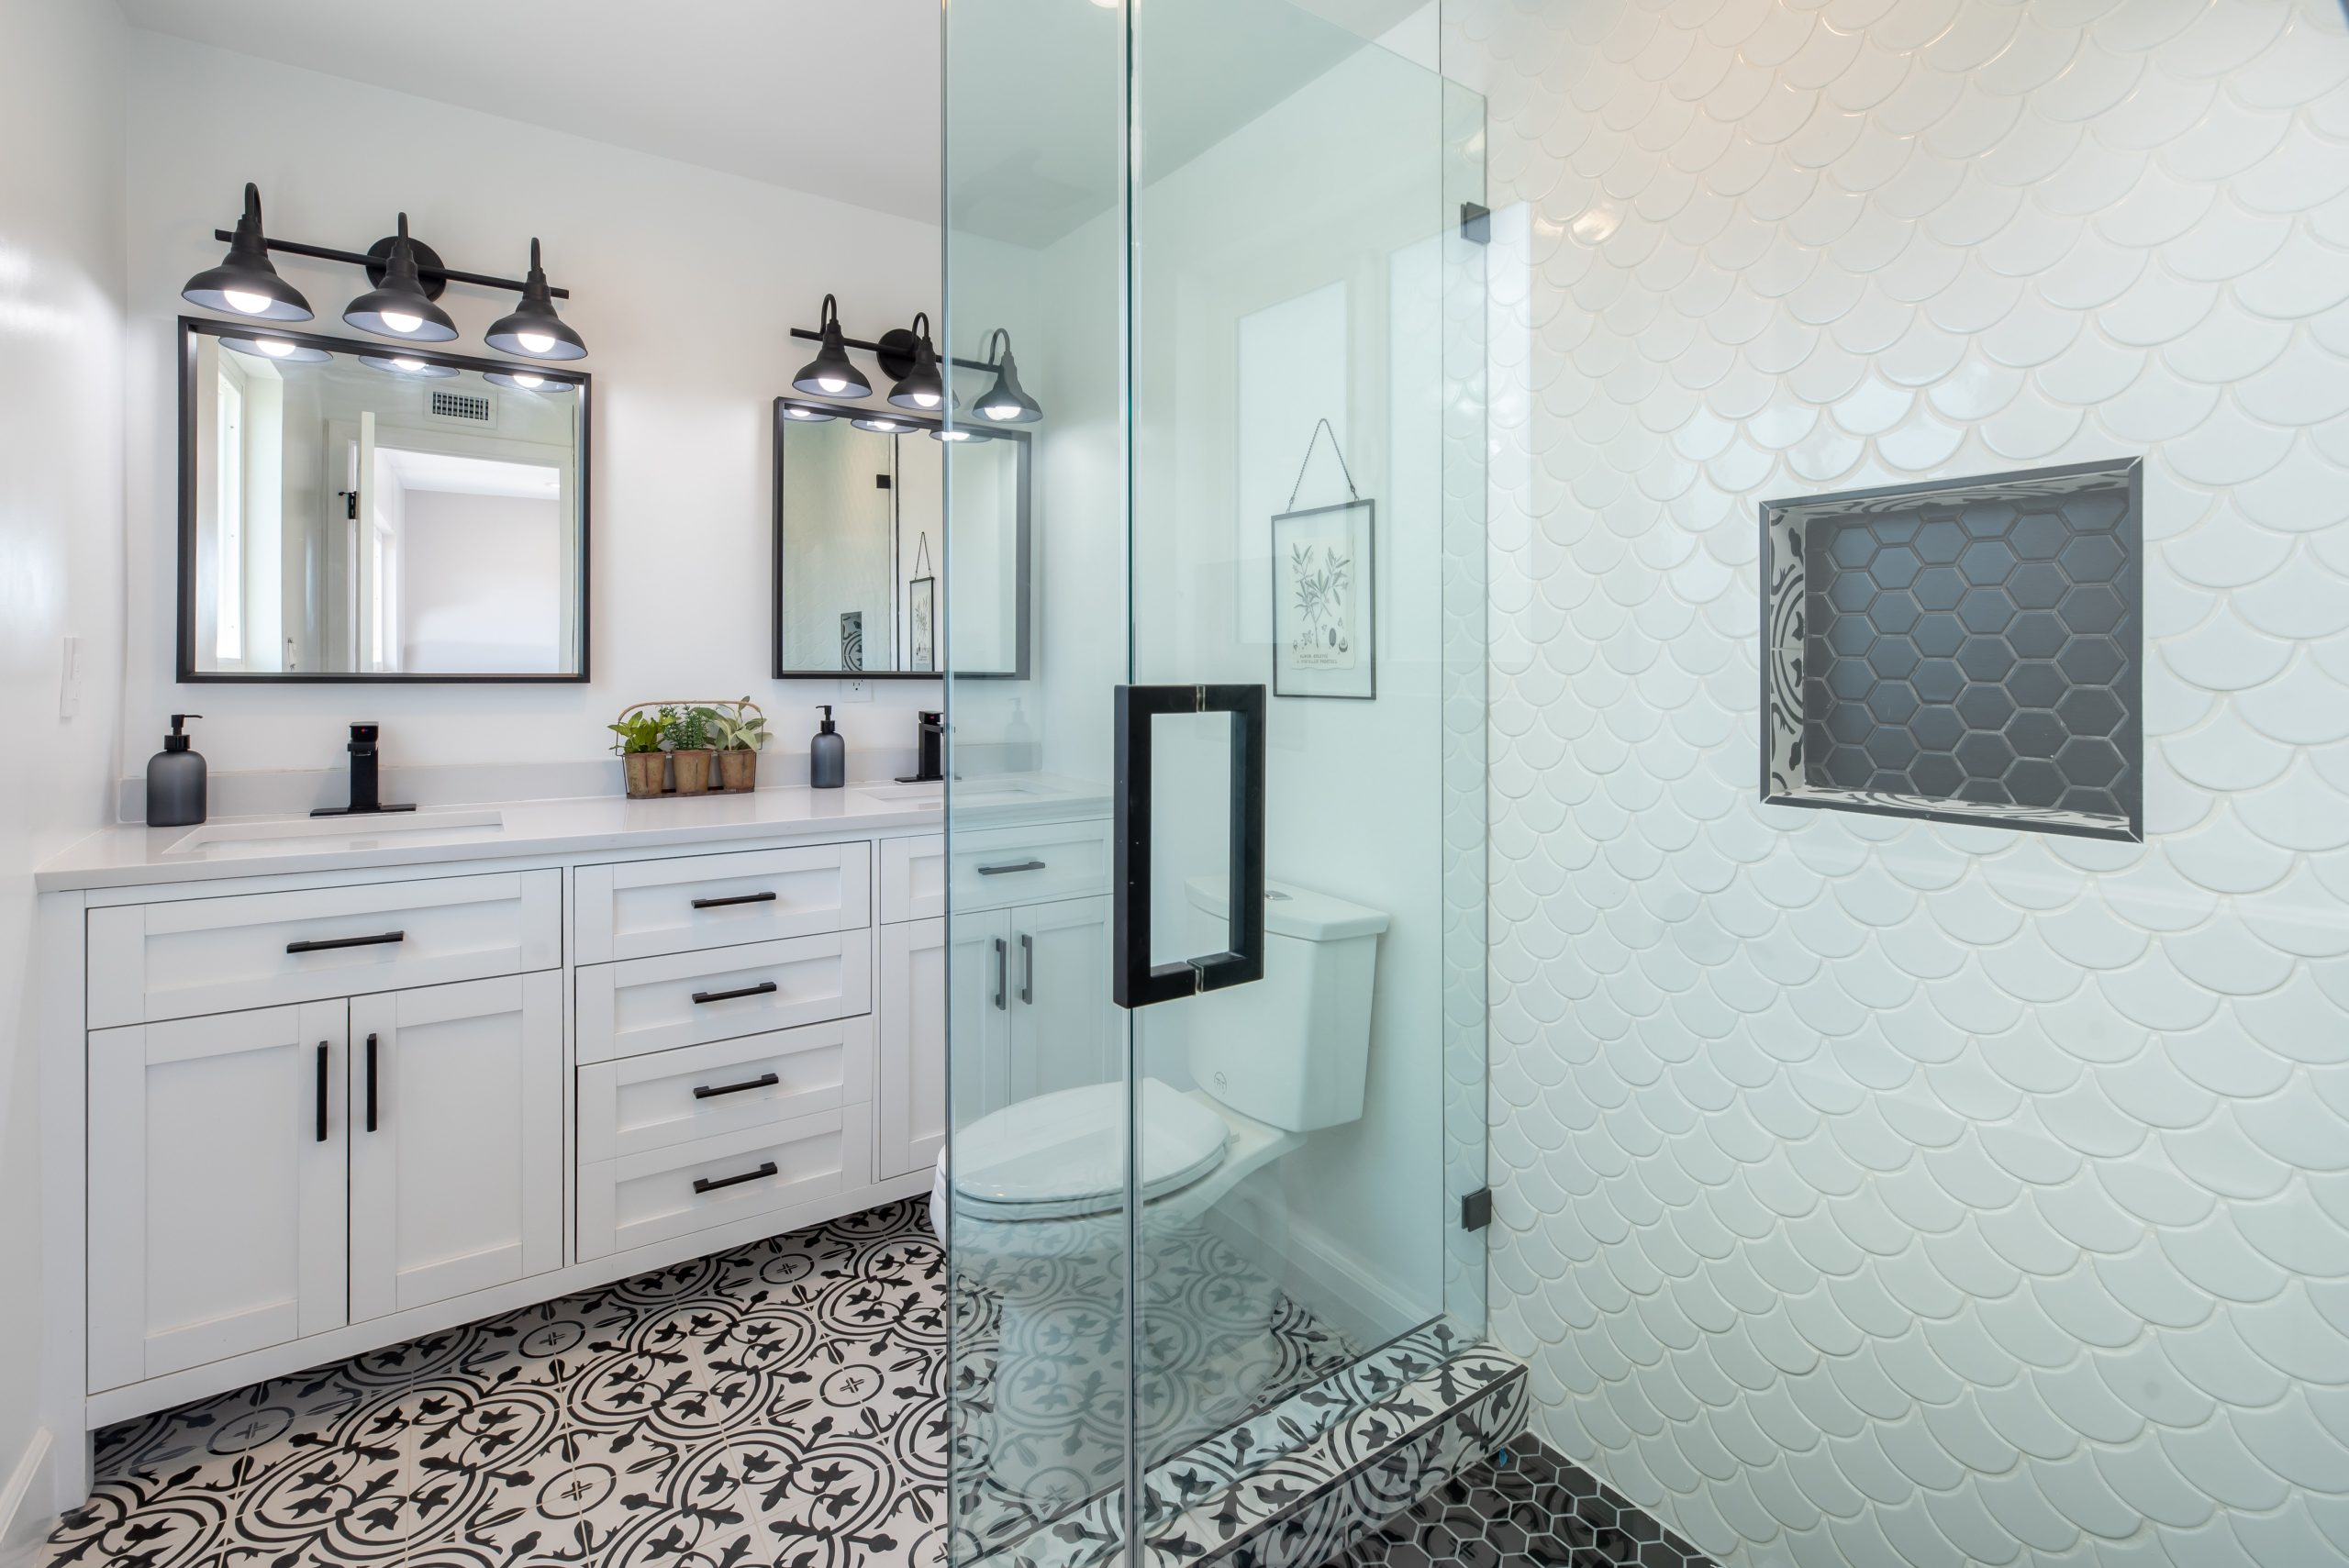 geometric black and white floor tiles with a glassed shower and three lights over each sink in this san diego bathroom remodel